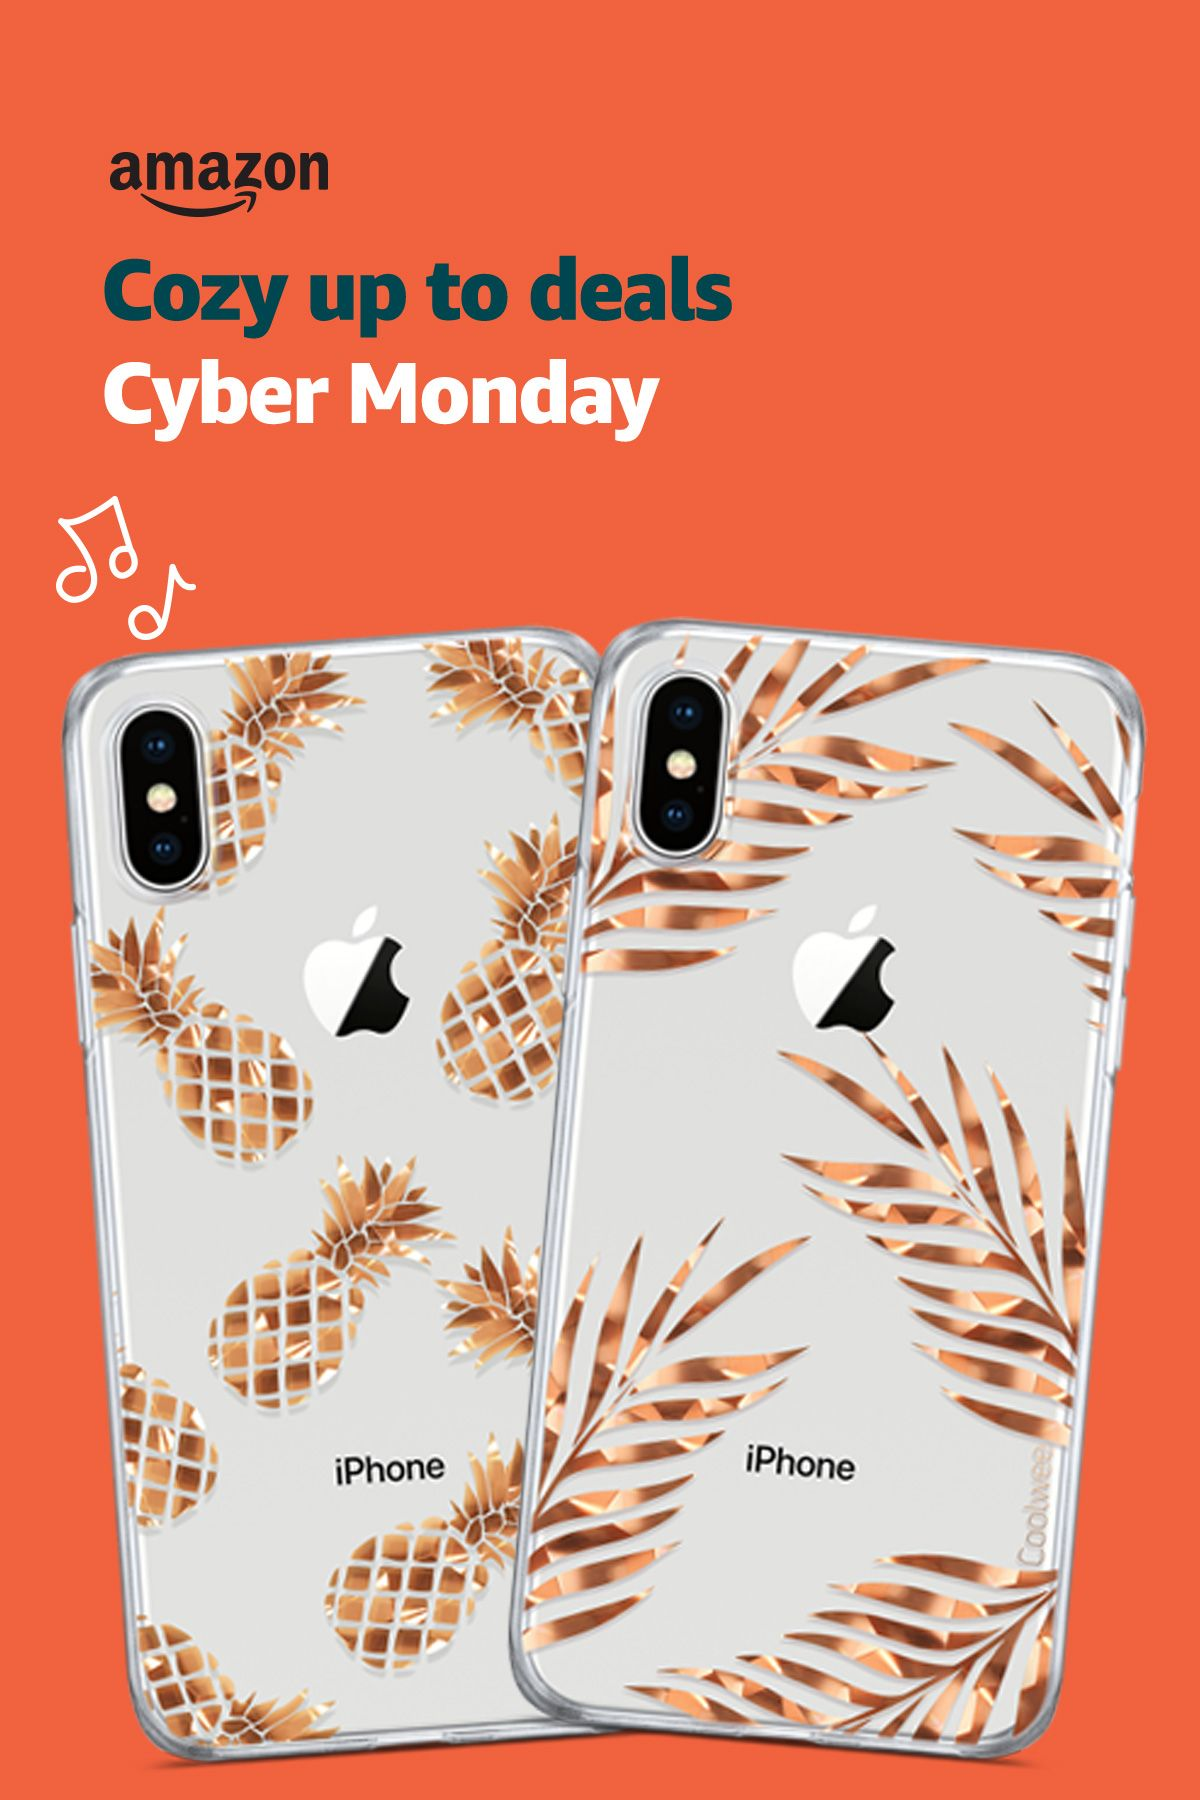 Cyber Monday Deals Coolwee Iphone Xs Max Rose Gold Floral Foil Clear Case On Amazon Https Amzn To 2p0kvow Save 10 Off For Case Rose Gold Case Iphone 10